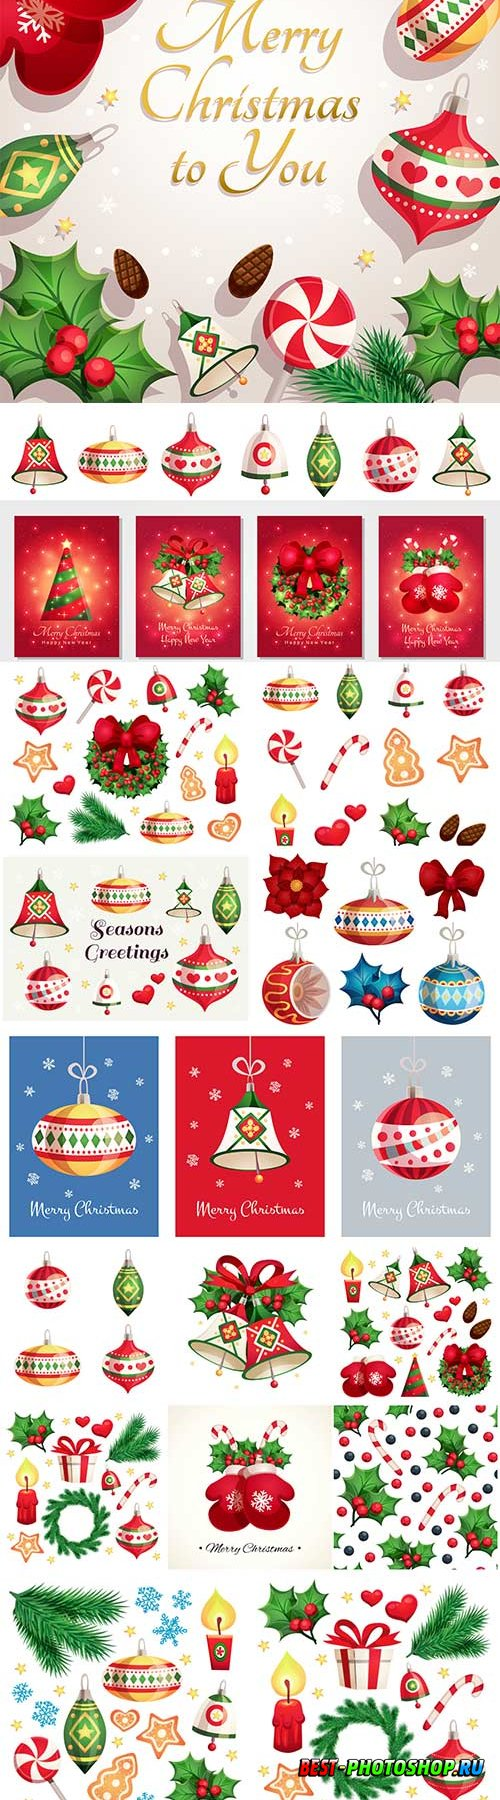 Merry christmas and happy new year card with decorative elements, christmas toys, bells, snowflakes and stars